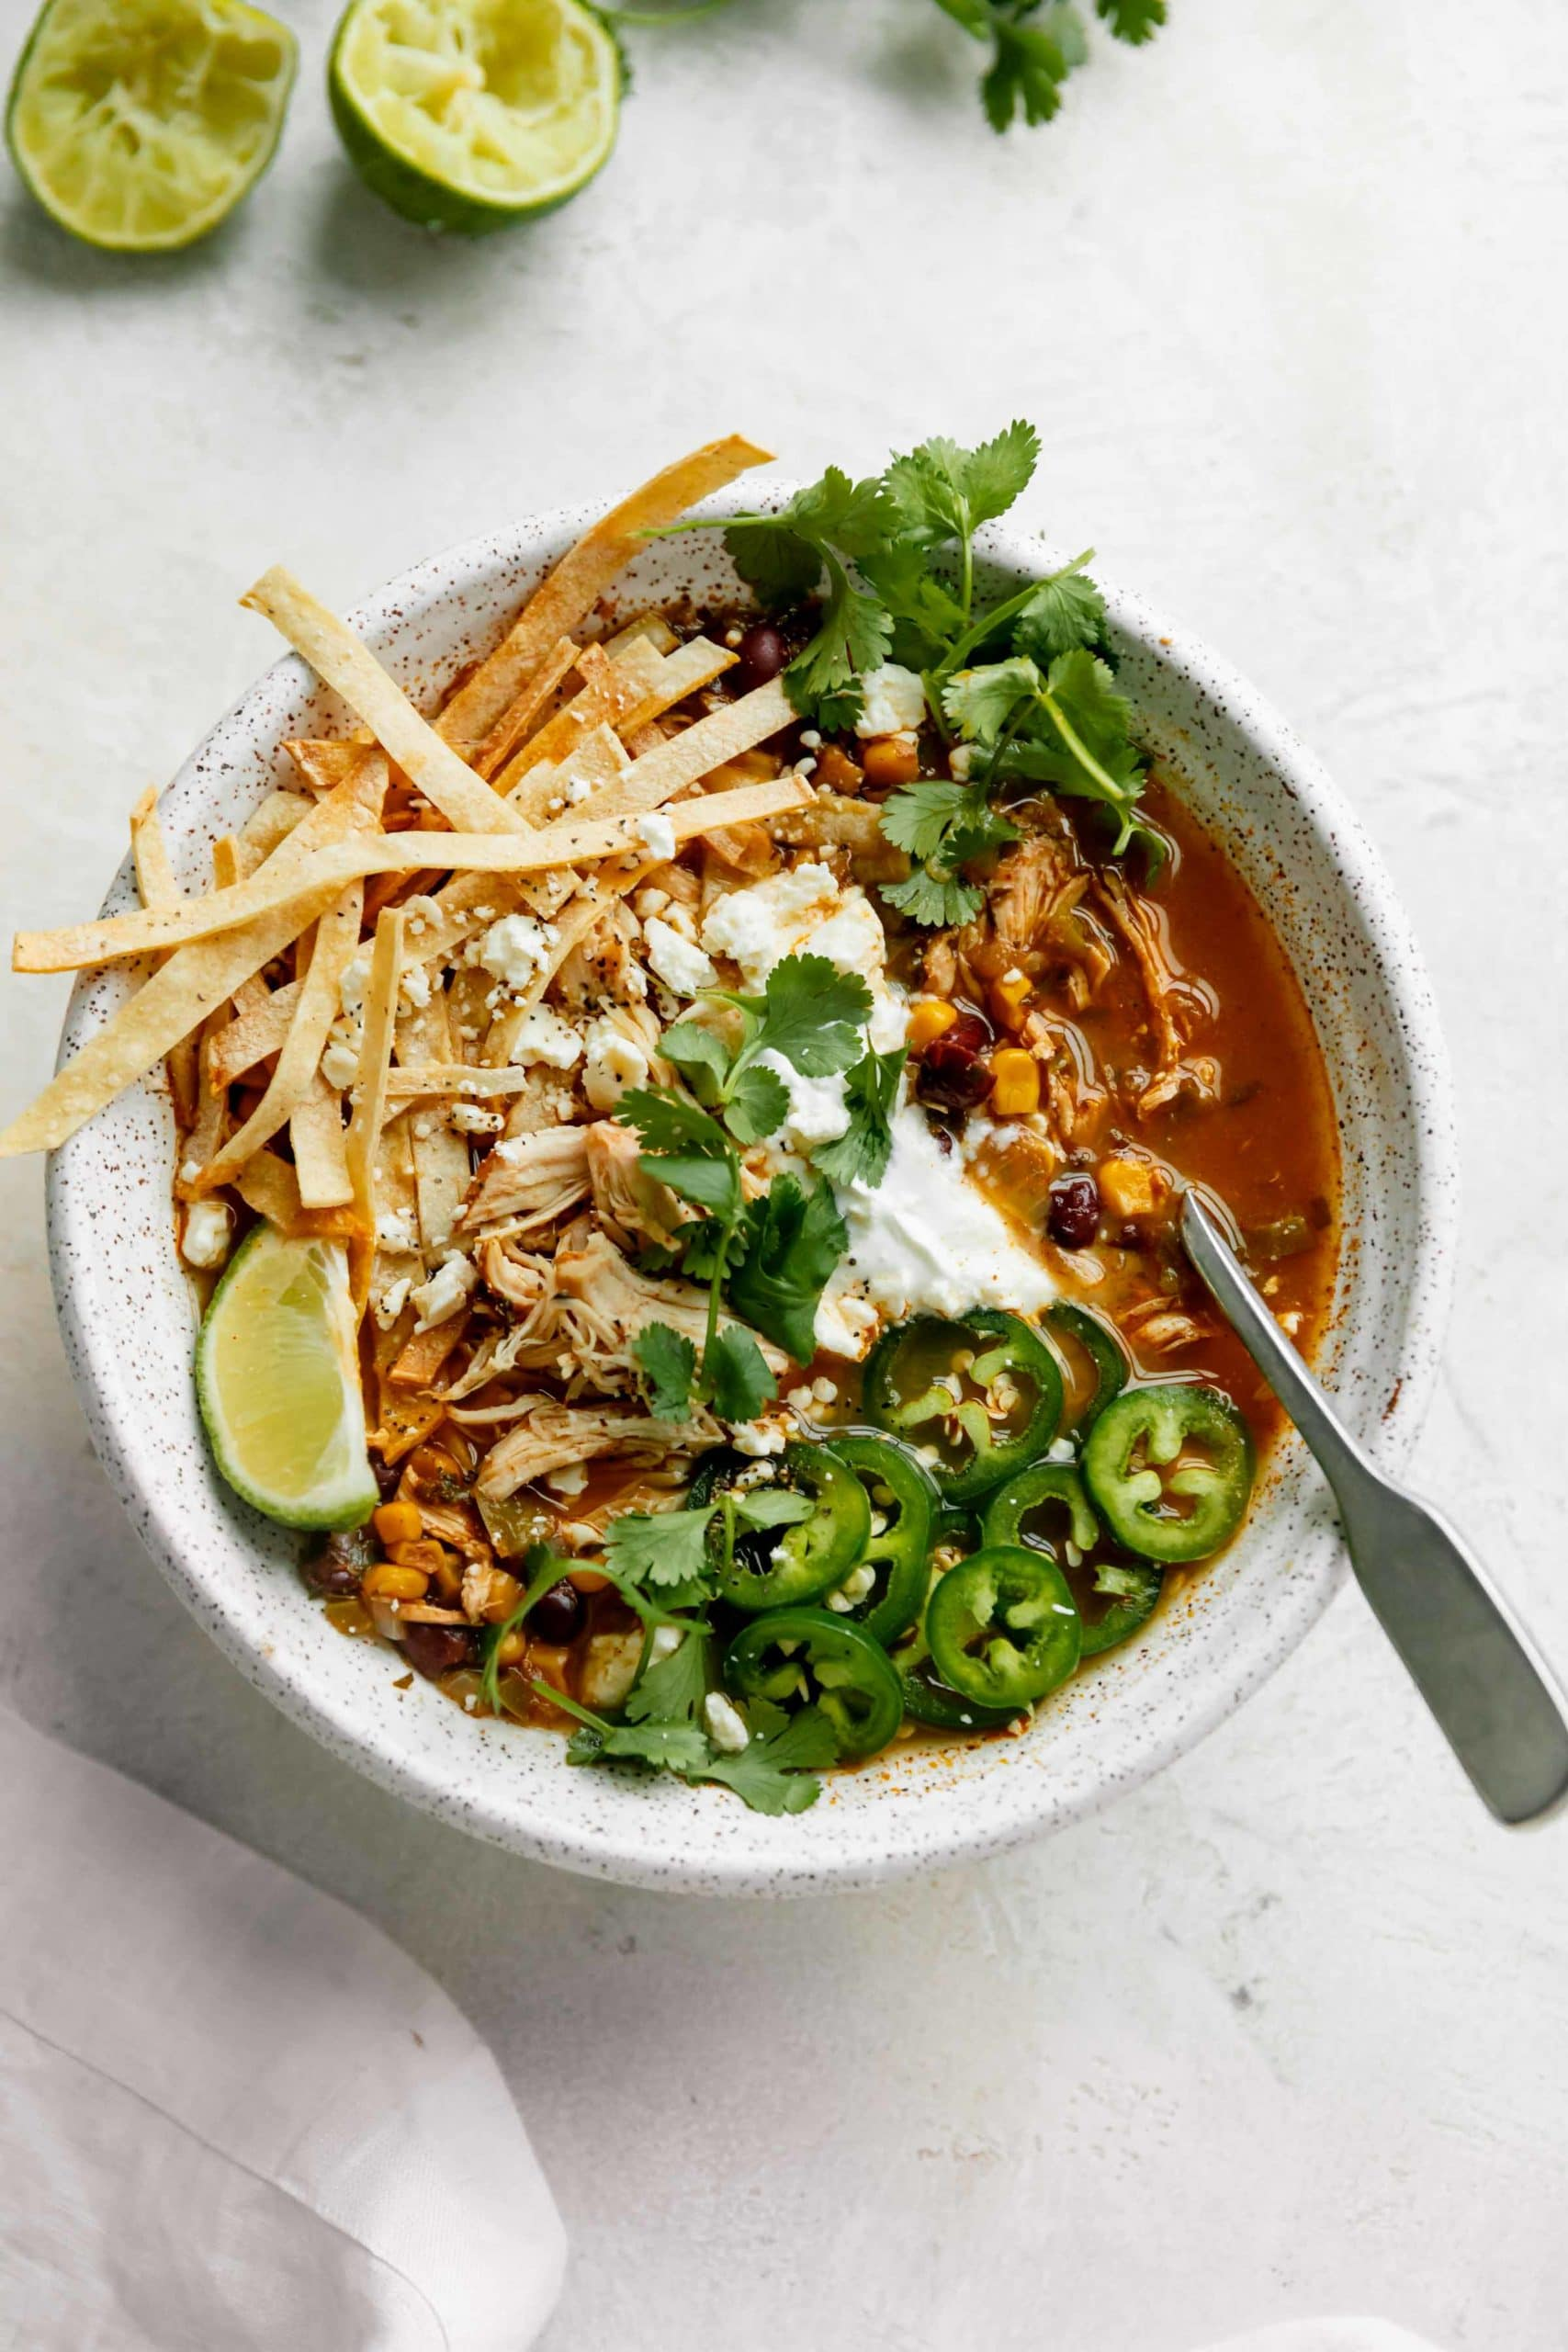 chicken tortilla soup recipe topped with crunchy tortilla strips